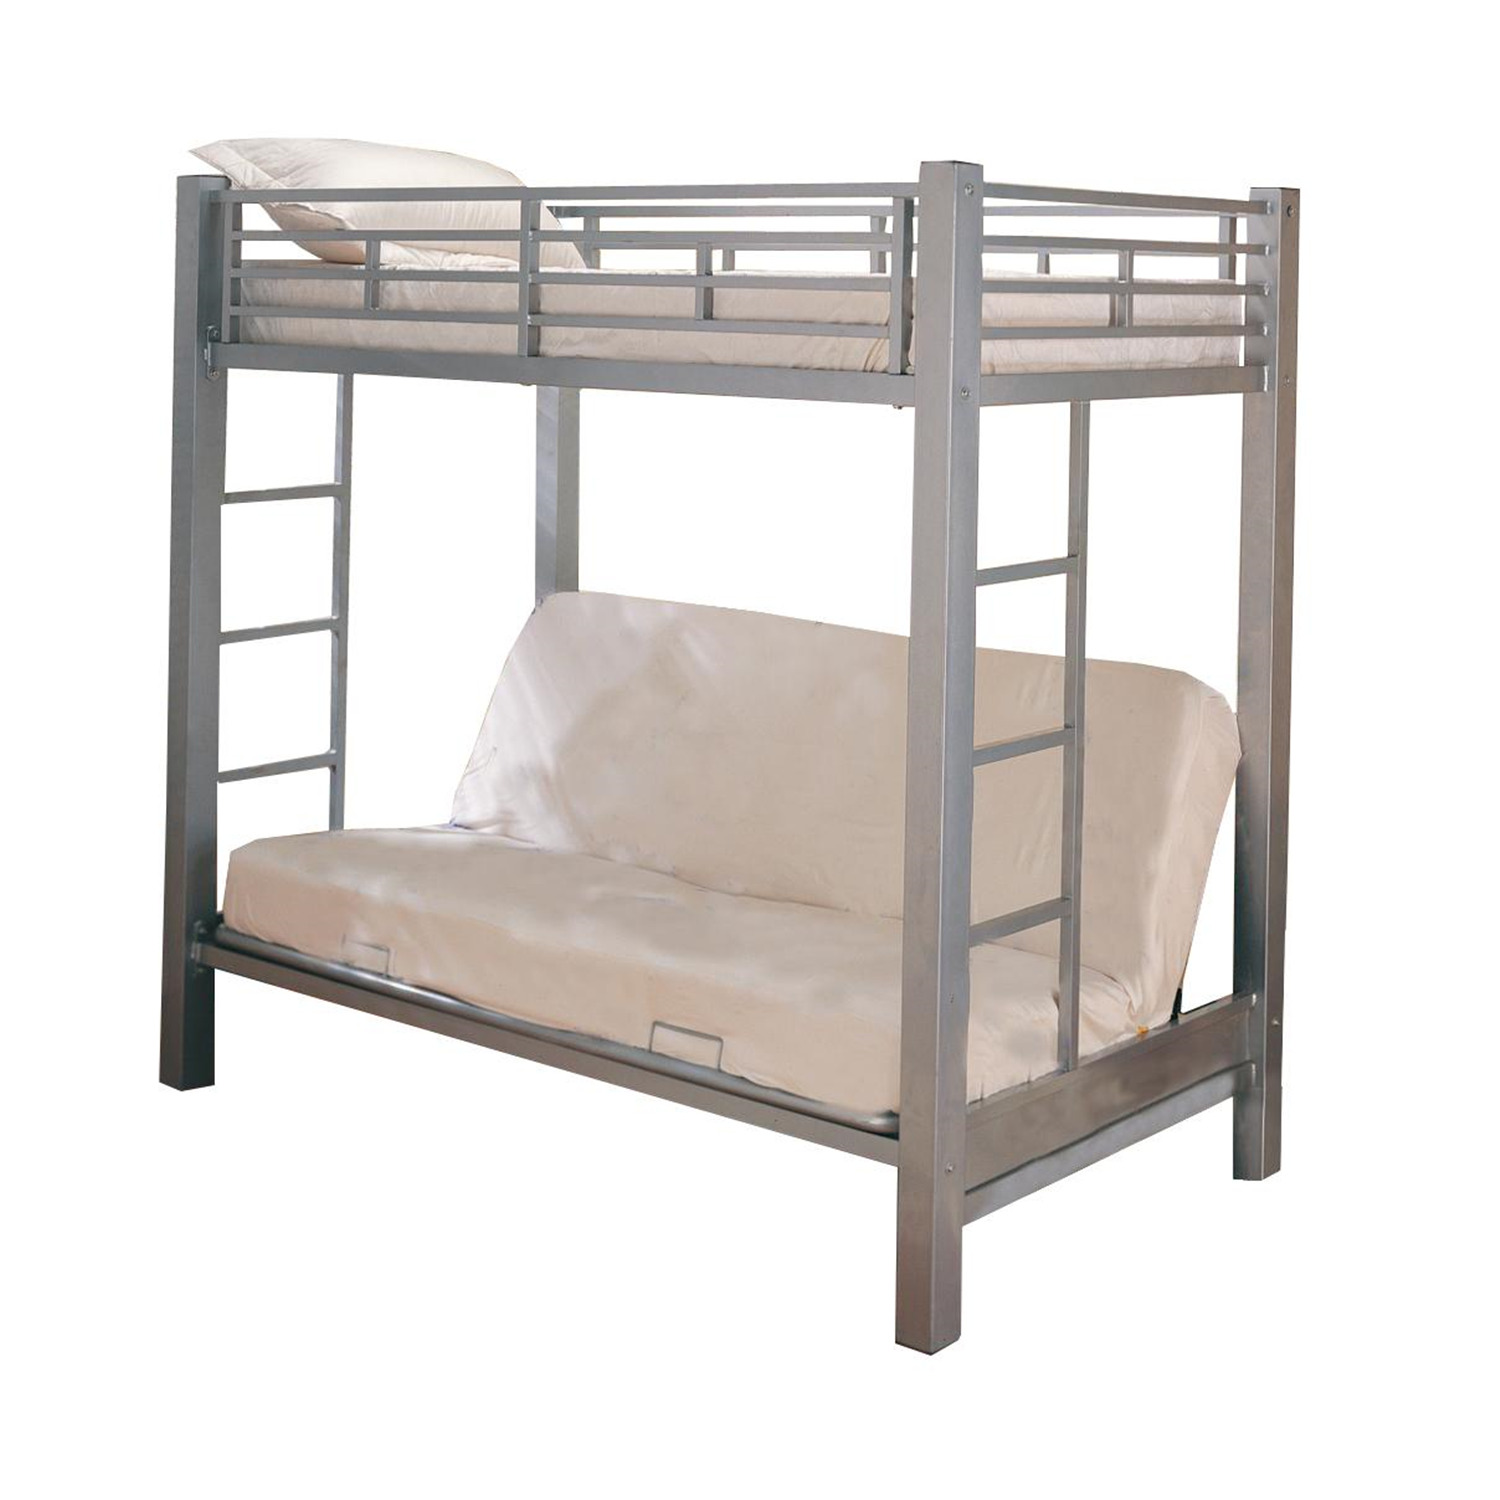 Home Source Full Size Bunk Bed Sleeper by OJ merce